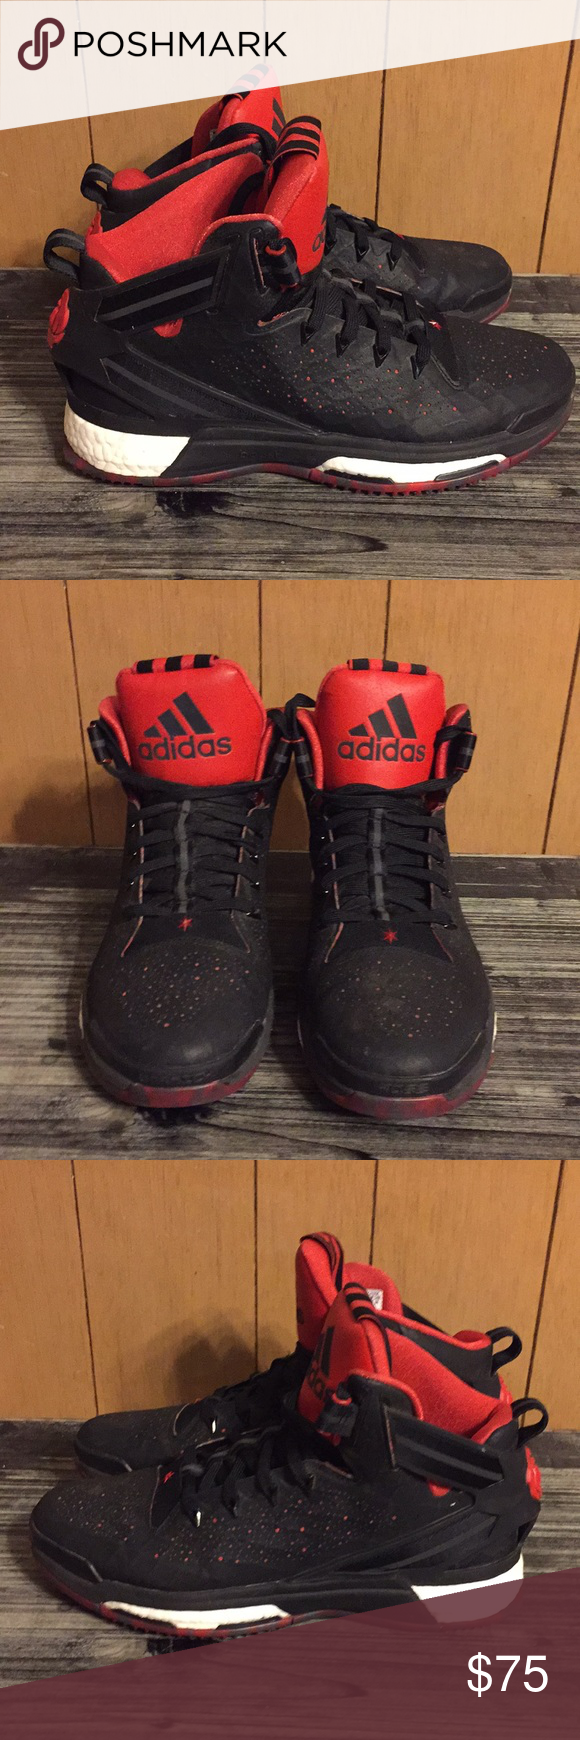 """half off fb6e1 29468 Adidas D Rose 6 in 10.5 size NBA Superstar Derrick Rose 6 signature shoe in  the black and red """"Bulls"""" color way. Size 10.5 with slight signs of wear in  ..."""